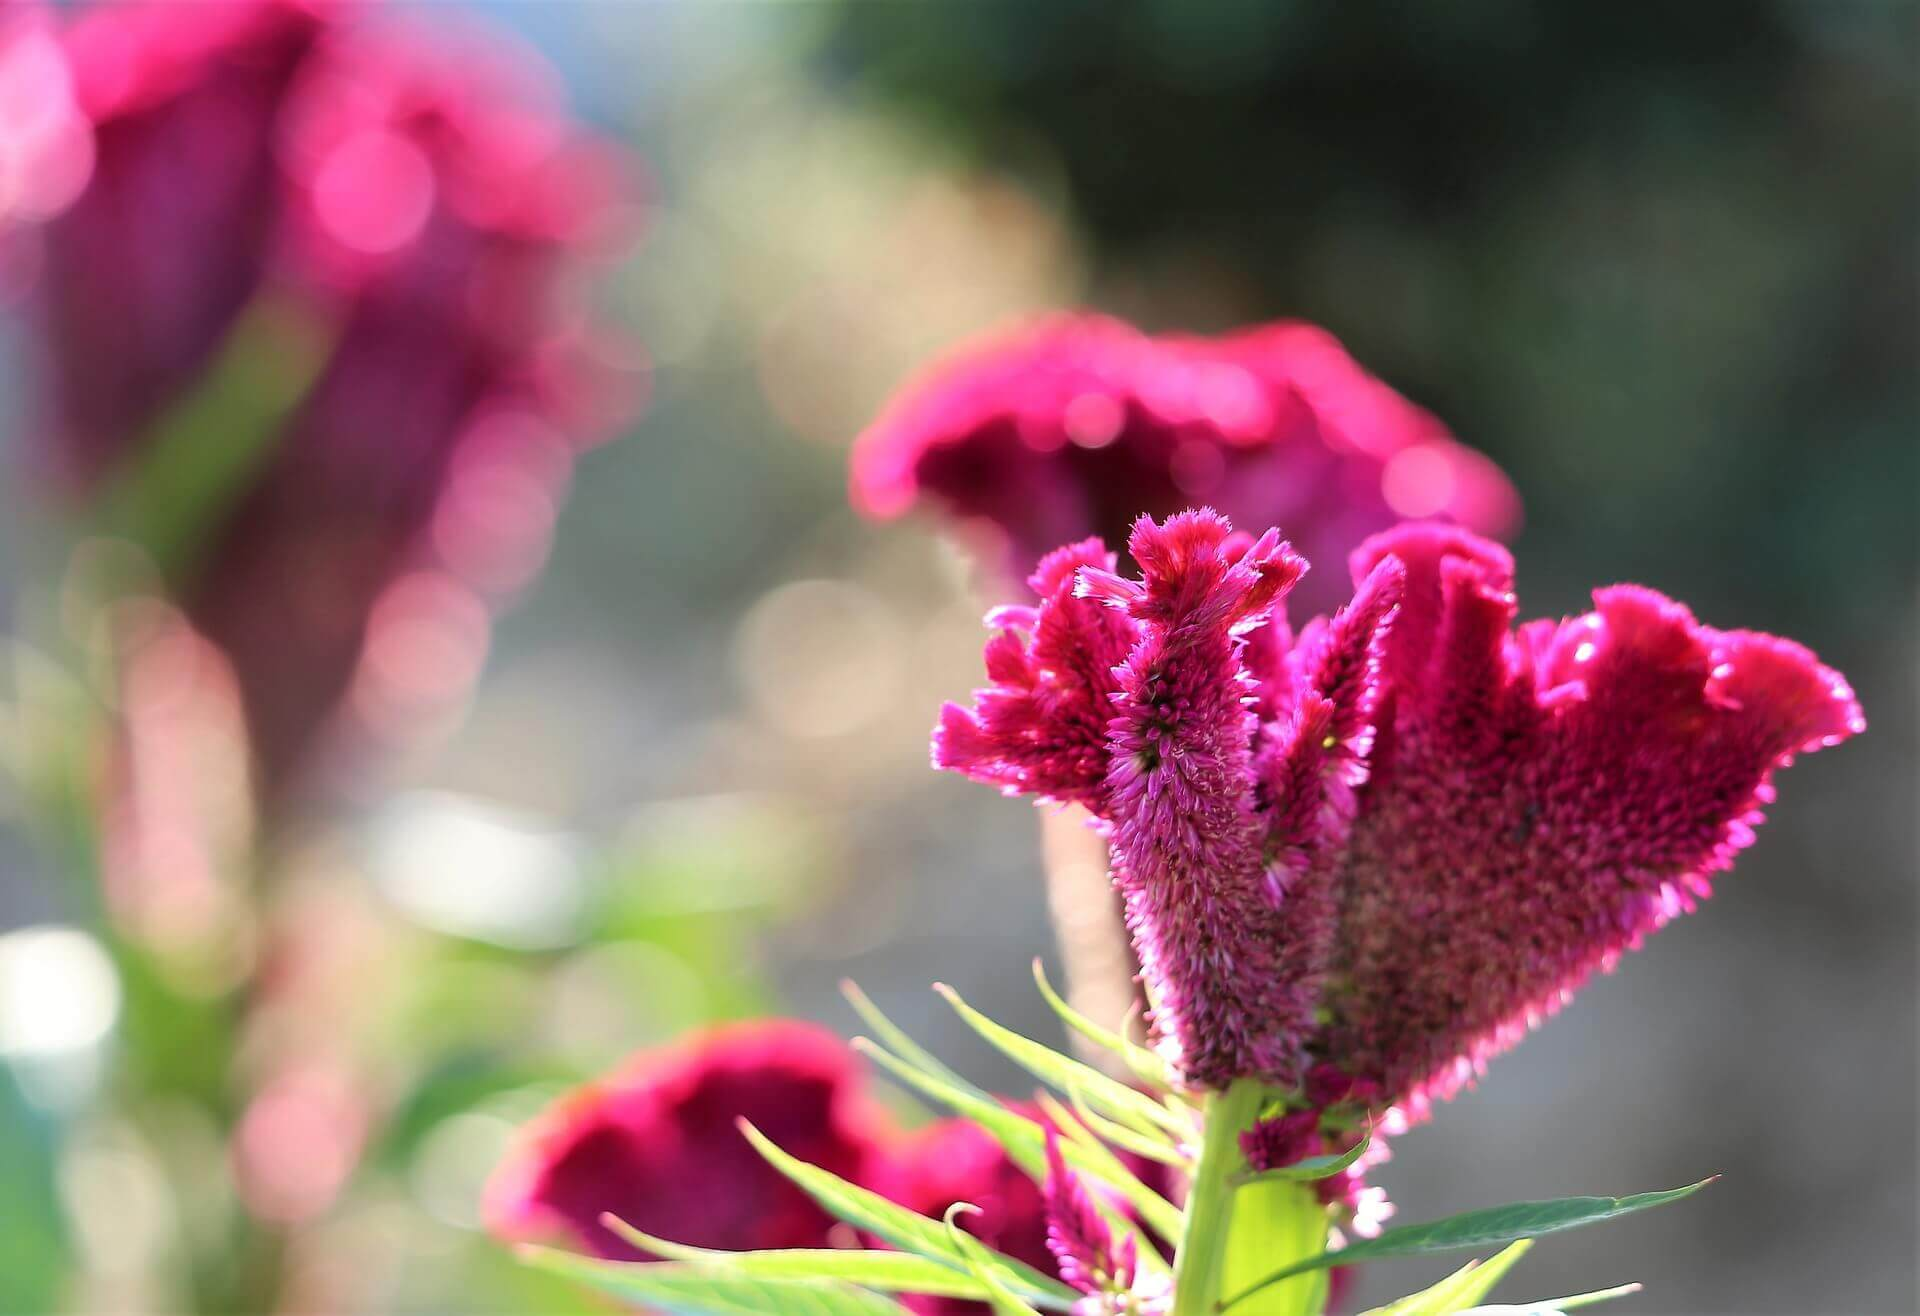 Close-up of celosia bloom.